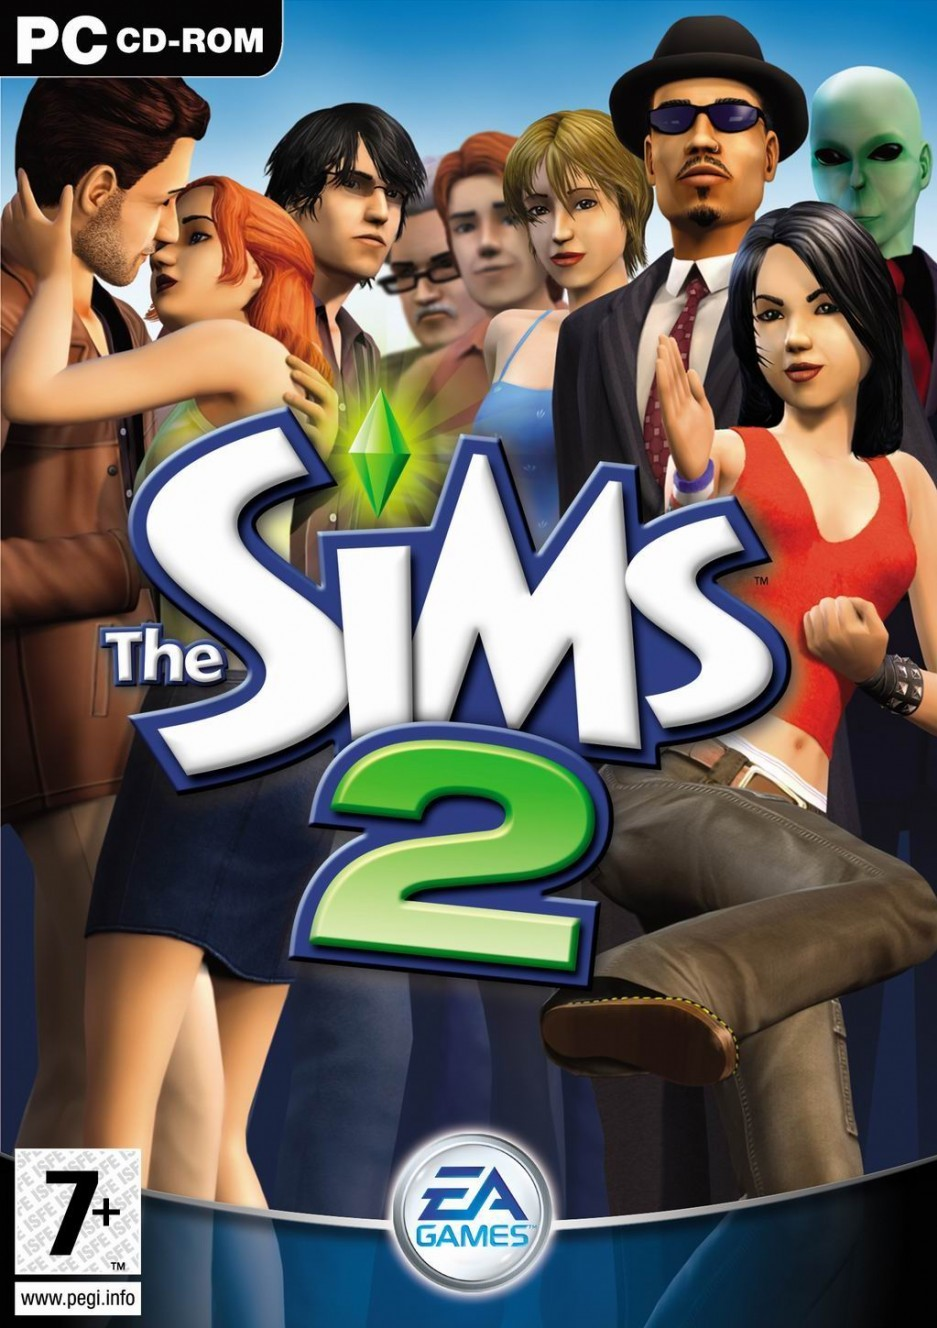 Les Sims 3 Showtime Edition Collector Katy Perry: Les Sims 2